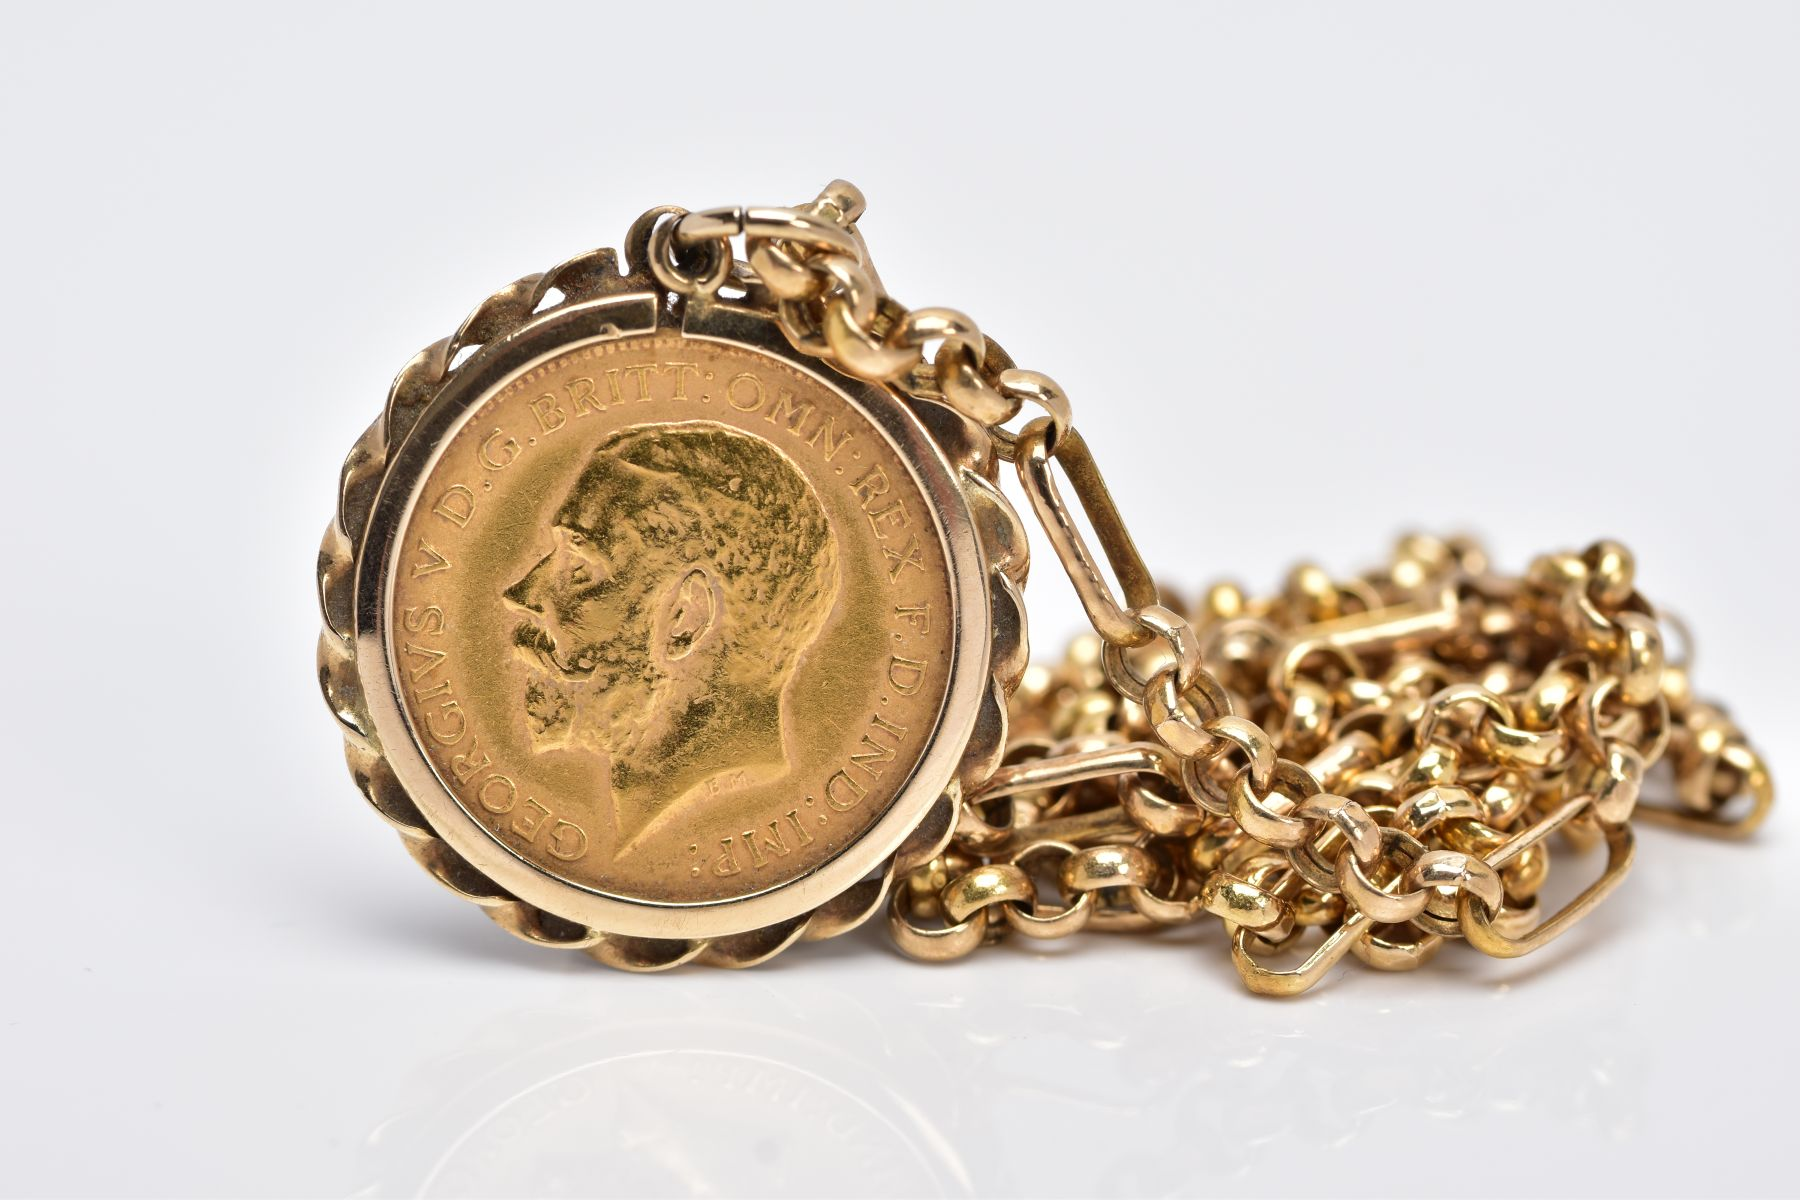 A MOUNTED GEORGIAN HALF SOVEREIGN PENDANT NECKLET, the half sovereign dated 1912, obverse - Image 2 of 3